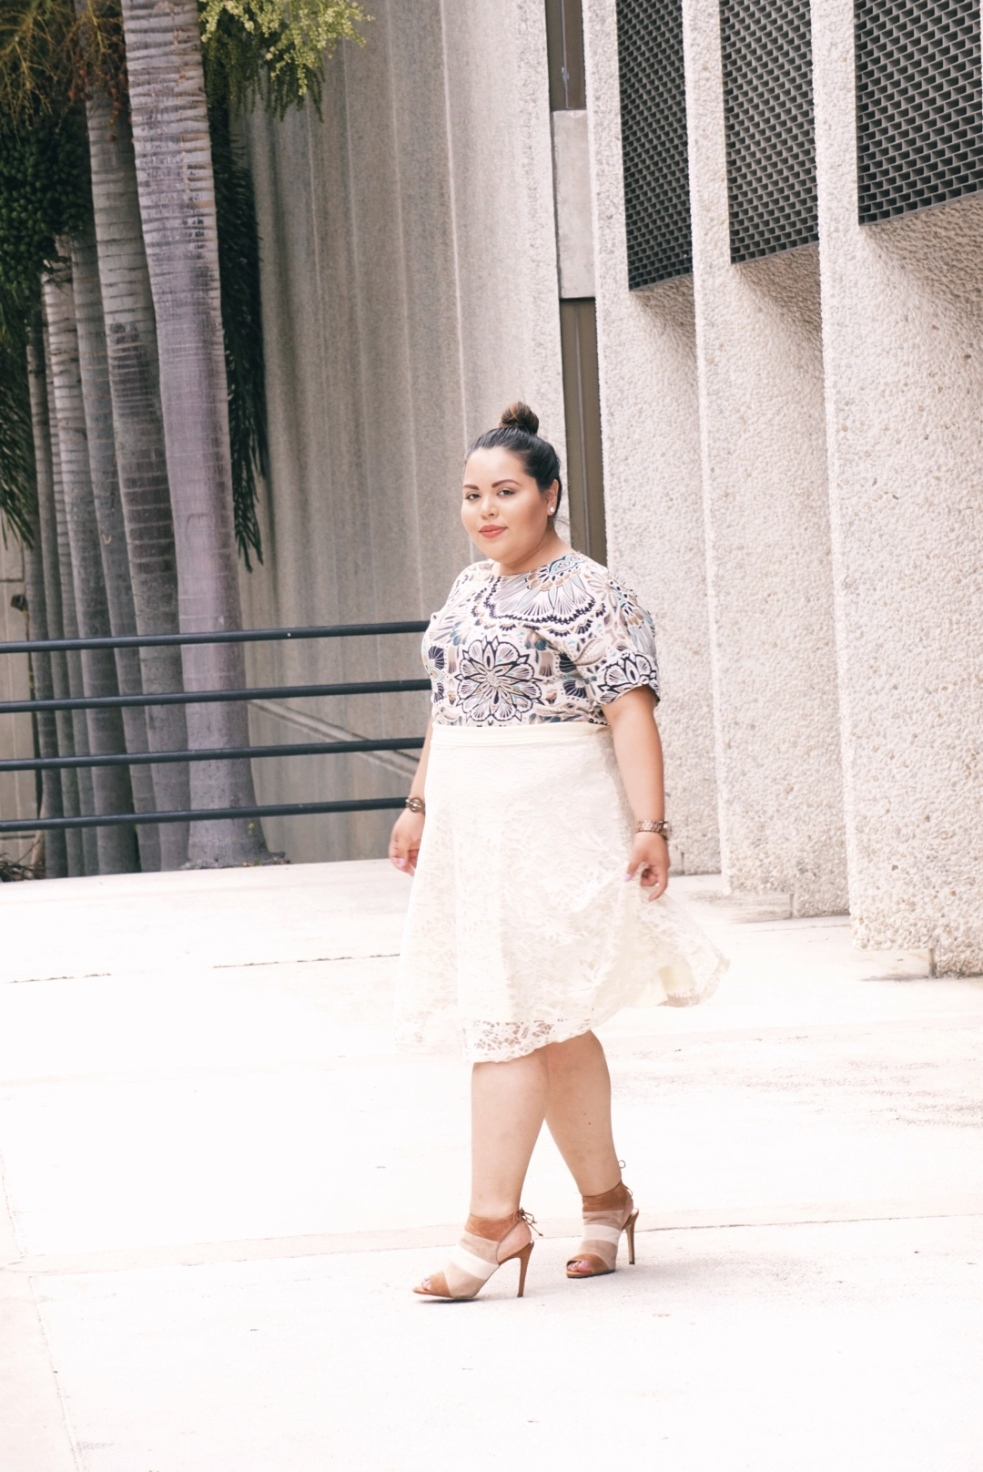 Plus Size Miami Spring Lifestyle Fashion